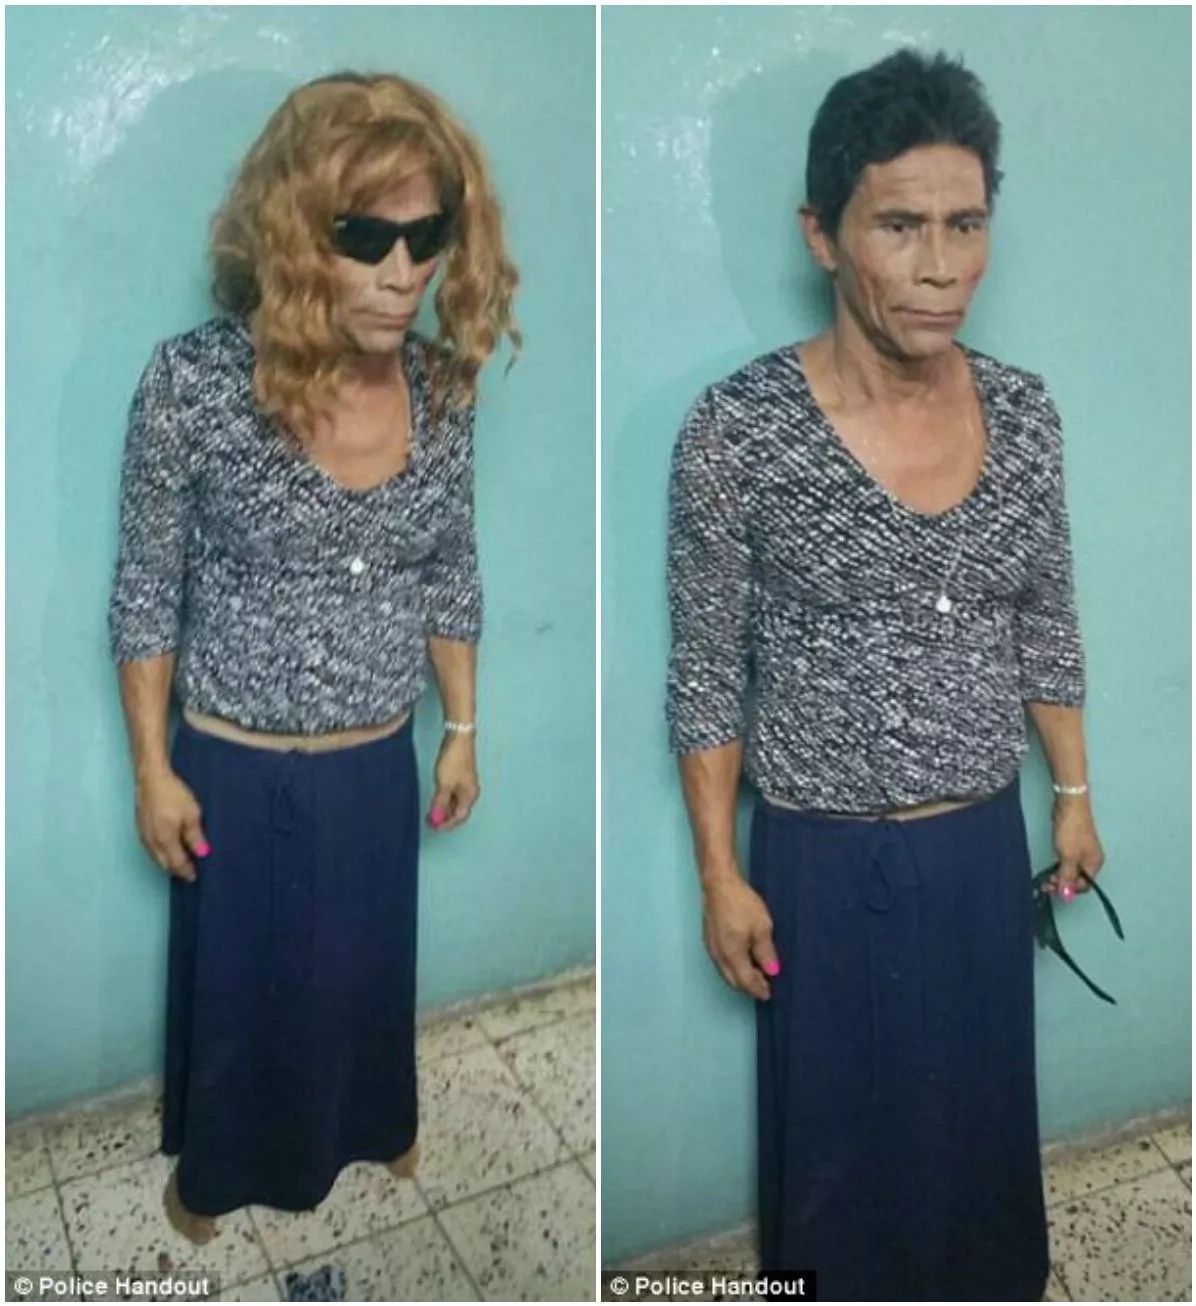 Francisco tried to break out of jail dressed as a woman